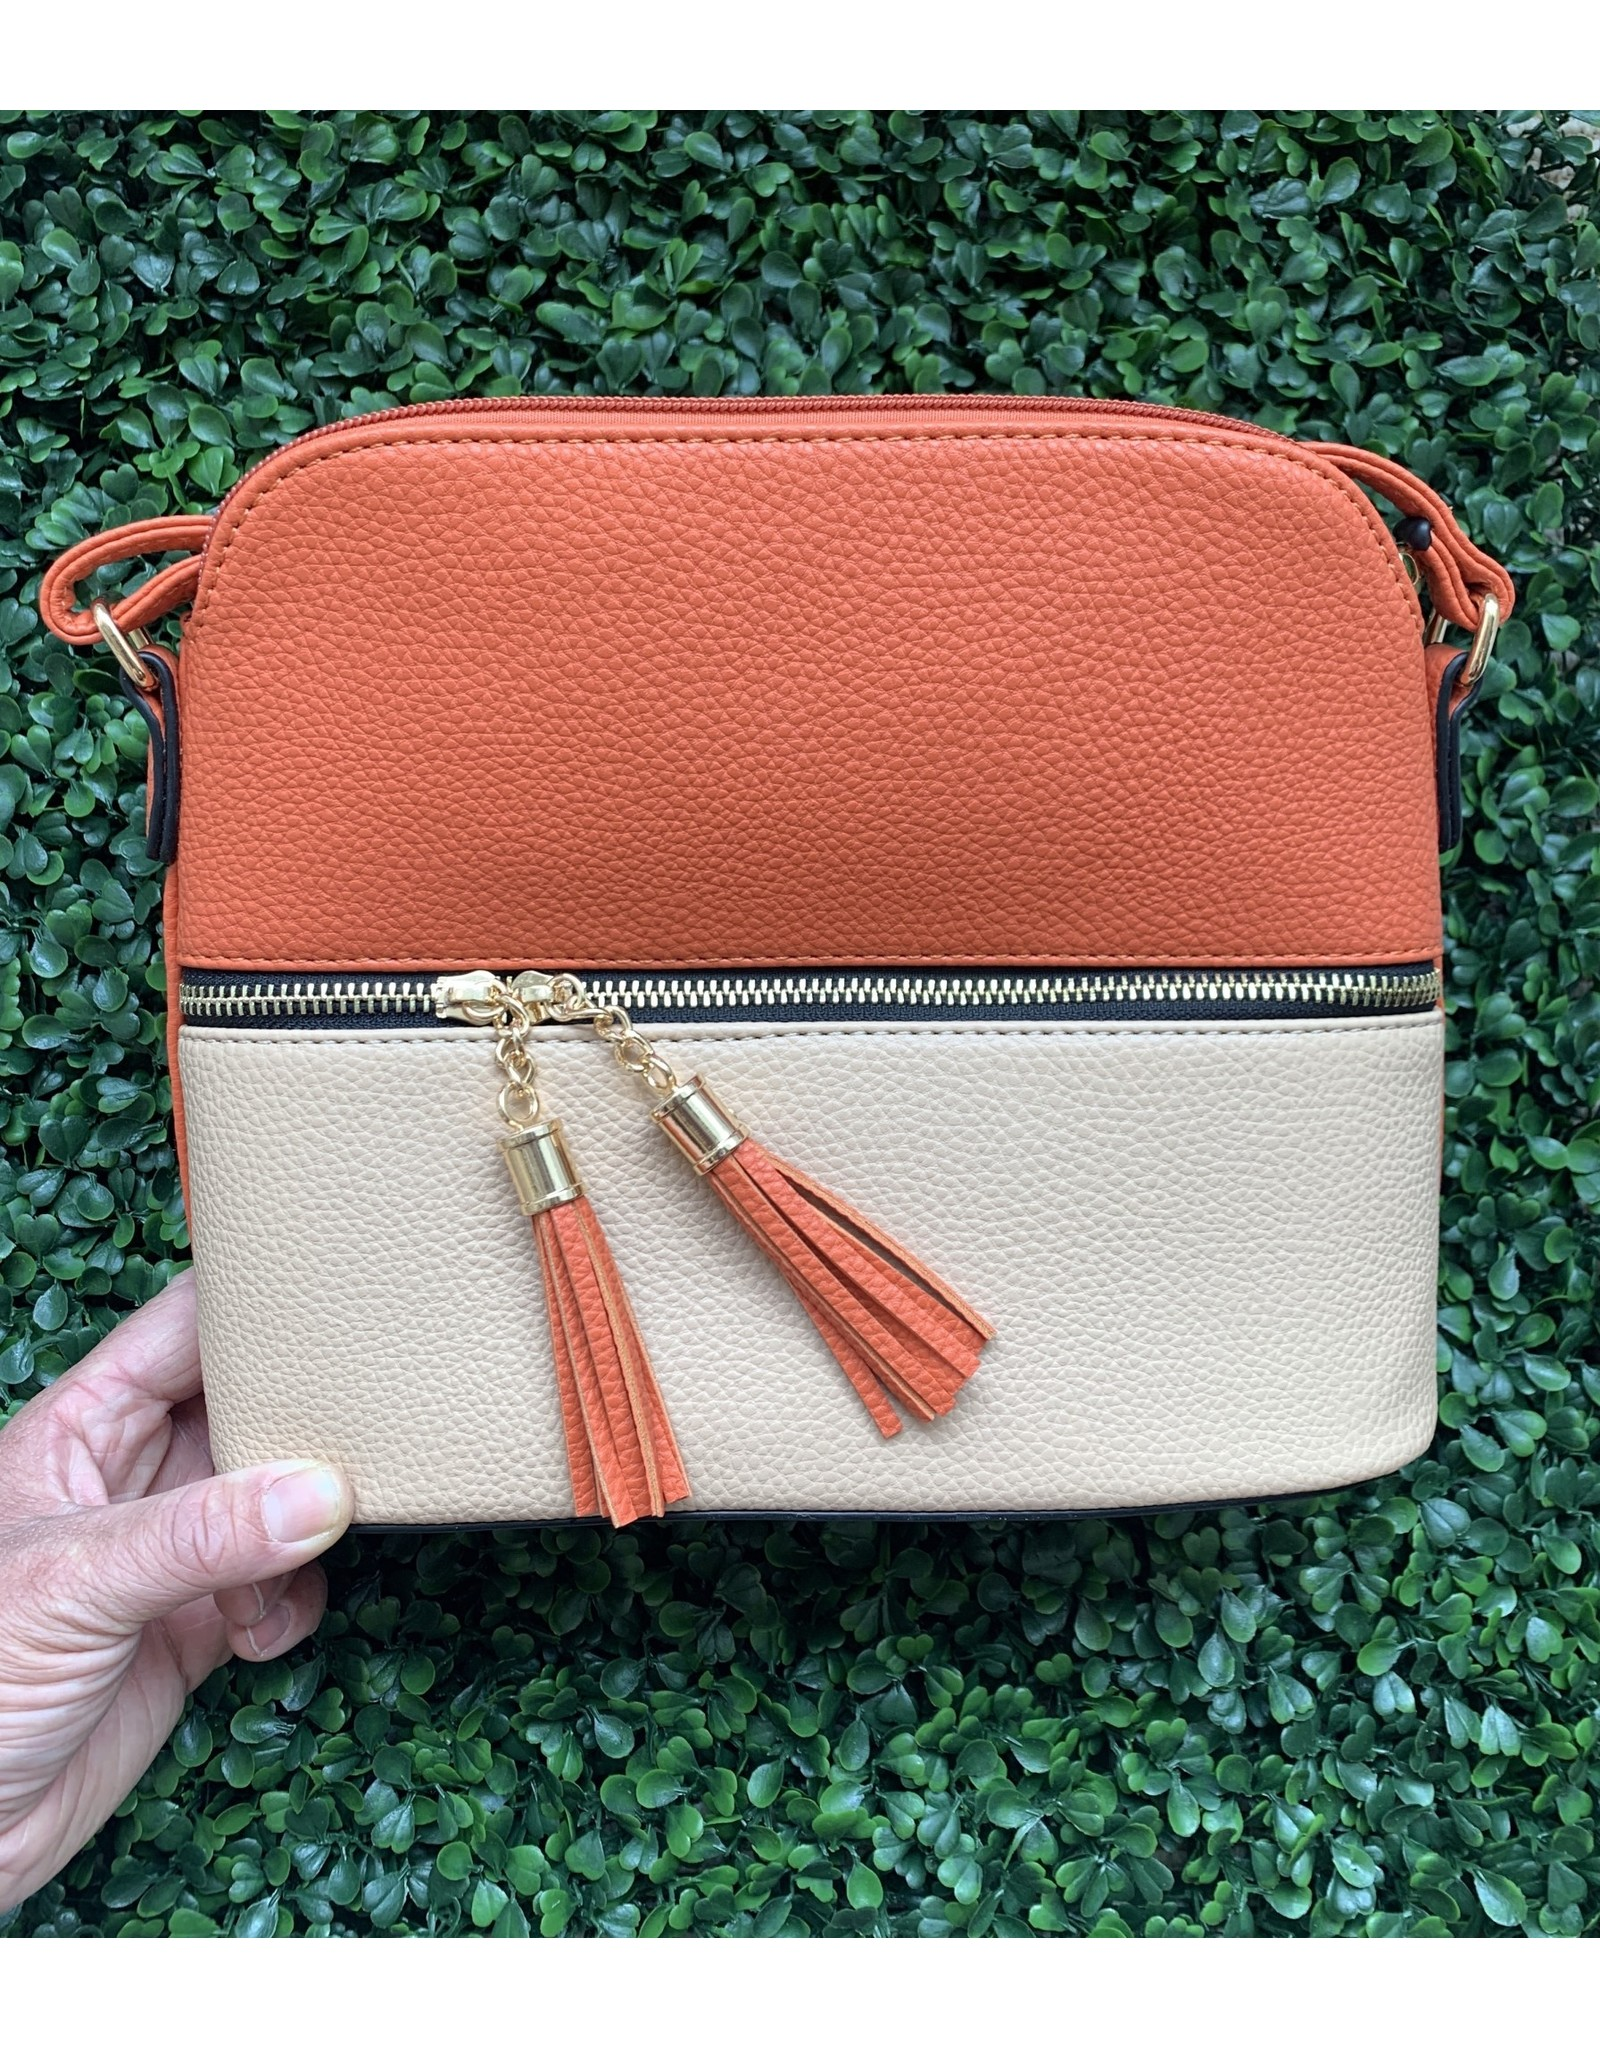 Accessories Shop by Place & Gather Pebbled Tassel Crossbody in Deep Salmon and Tan